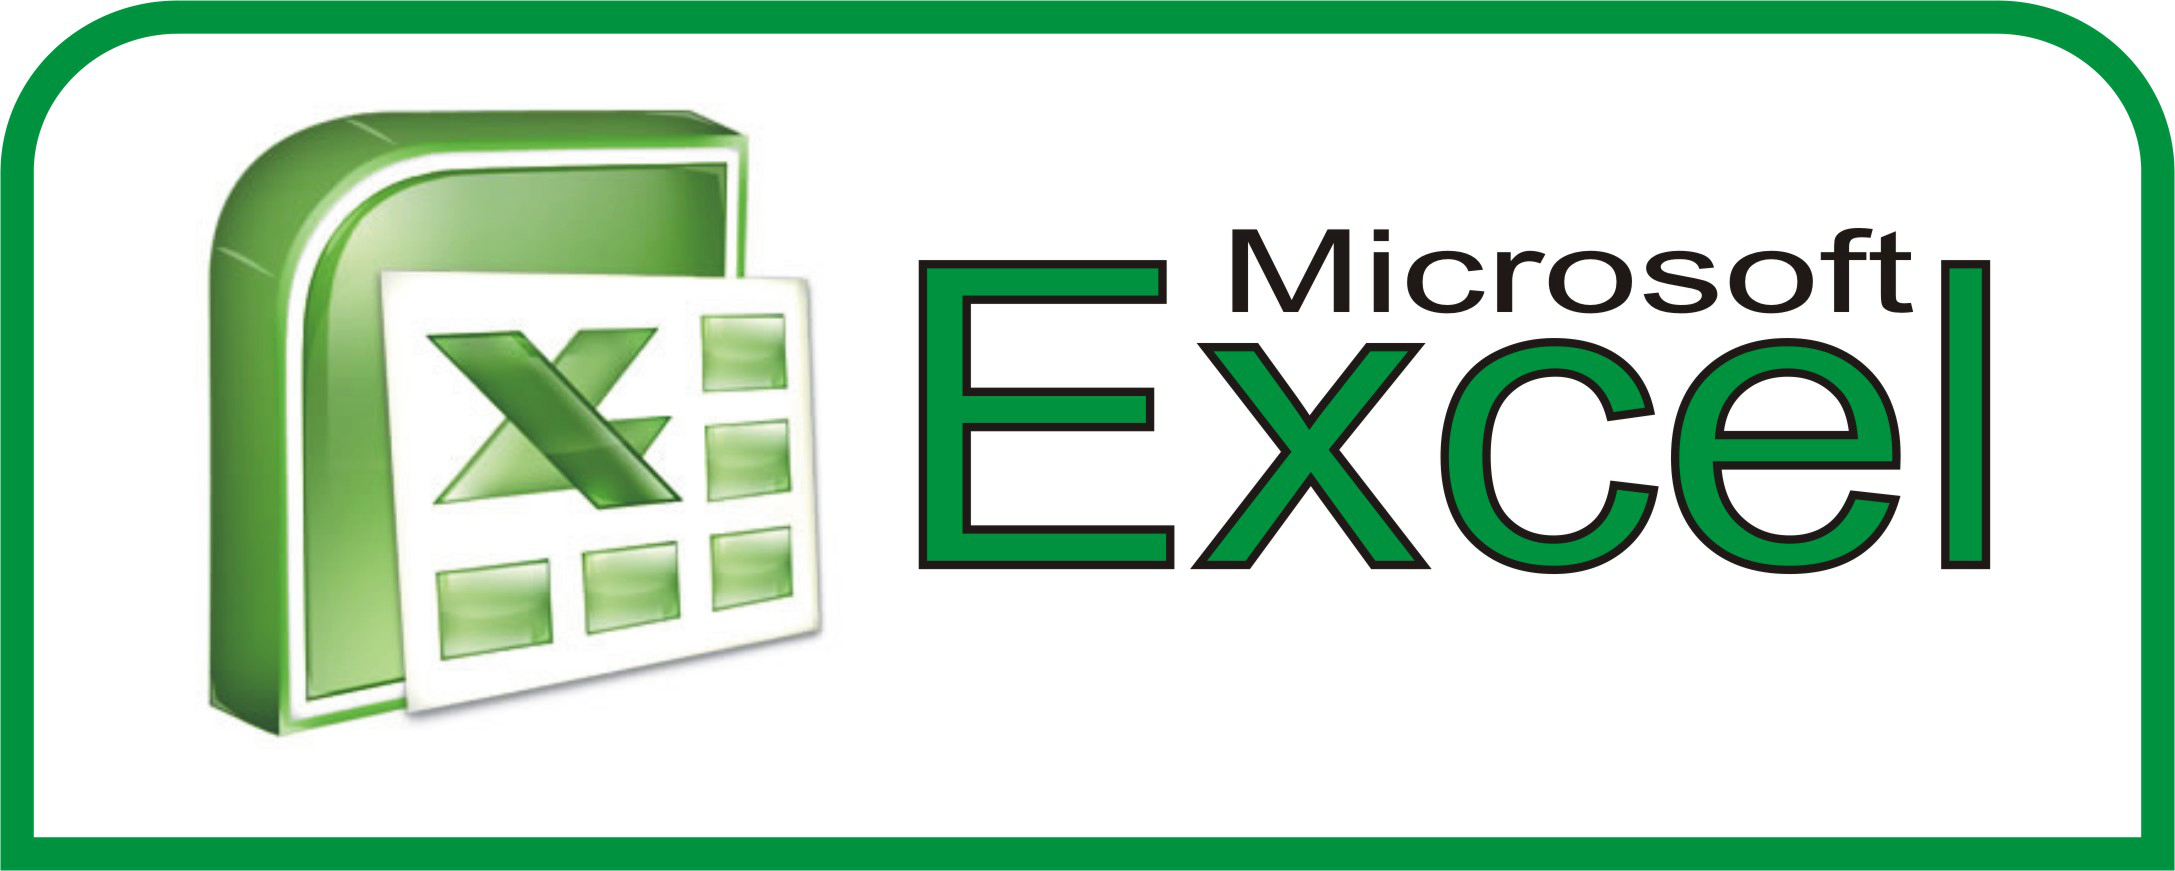 Ediblewildsus  Pleasant  Excel Shortcuts You Probably Didnt Know About  Techdissected With Marvelous How To Combine Cells Excel Besides Gillette Excel Sensor Furthermore Microsoft Excel User Guide With Attractive Sort Excel Columns Also Get Microsoft Excel In Addition Excel Remove Duplicate Lines And How Do You Do Vlookup In Excel As Well As Print Labels From Excel  Additionally Excel Project Management Templates Free From Techdissectedcom With Ediblewildsus  Marvelous  Excel Shortcuts You Probably Didnt Know About  Techdissected With Attractive How To Combine Cells Excel Besides Gillette Excel Sensor Furthermore Microsoft Excel User Guide And Pleasant Sort Excel Columns Also Get Microsoft Excel In Addition Excel Remove Duplicate Lines From Techdissectedcom